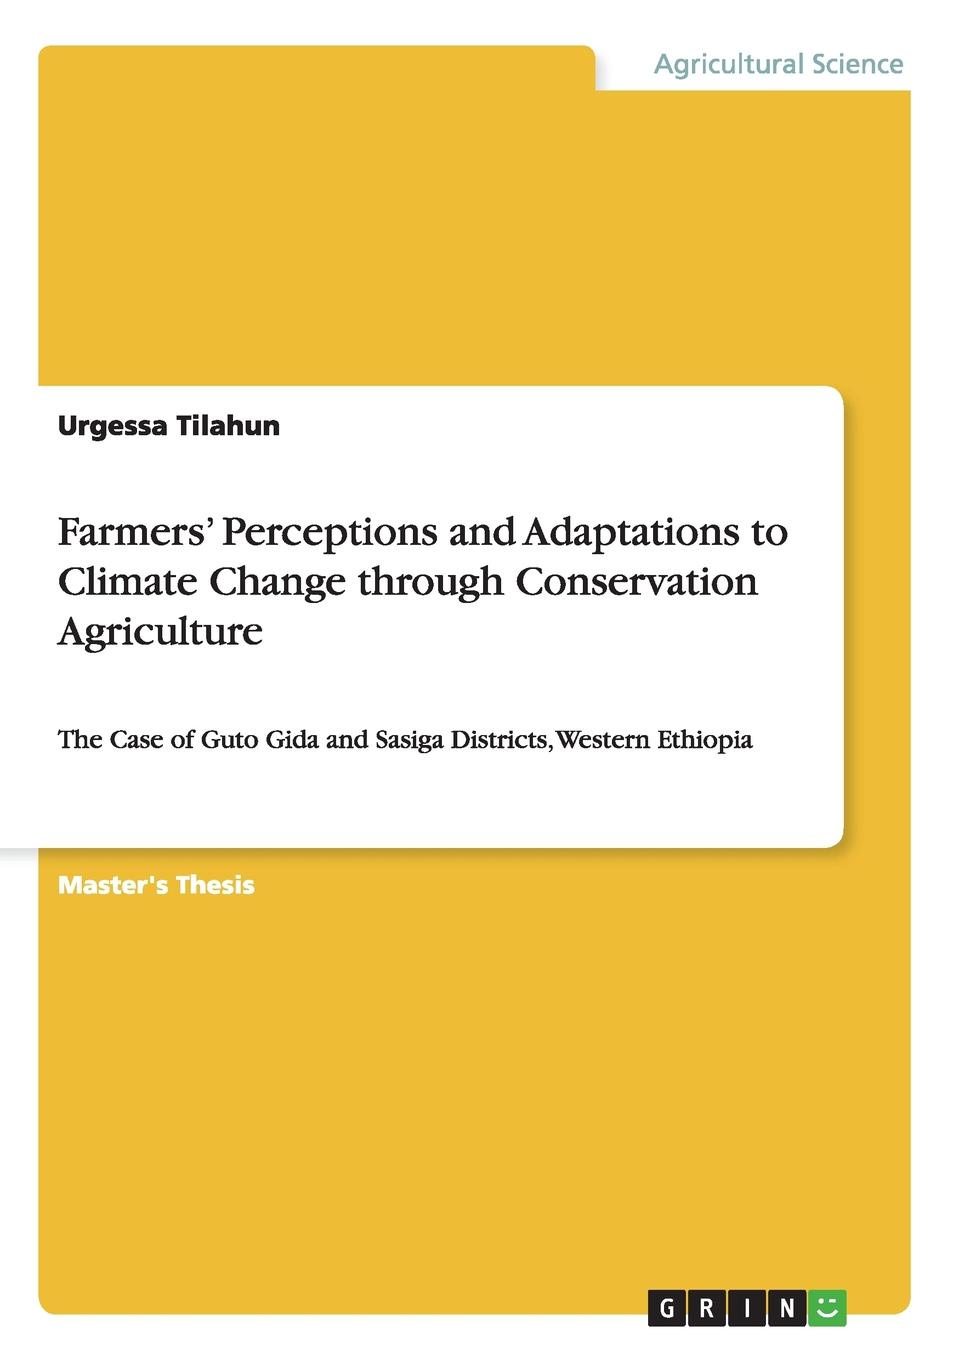 Urgessa Tilahun Farmers. Perceptions and Adaptations to Climate Change through Conservation Agriculture картридж cactus cs tk170 для kyocera mita fs 1320 1320d 1320dn чёрный 7200 страниц